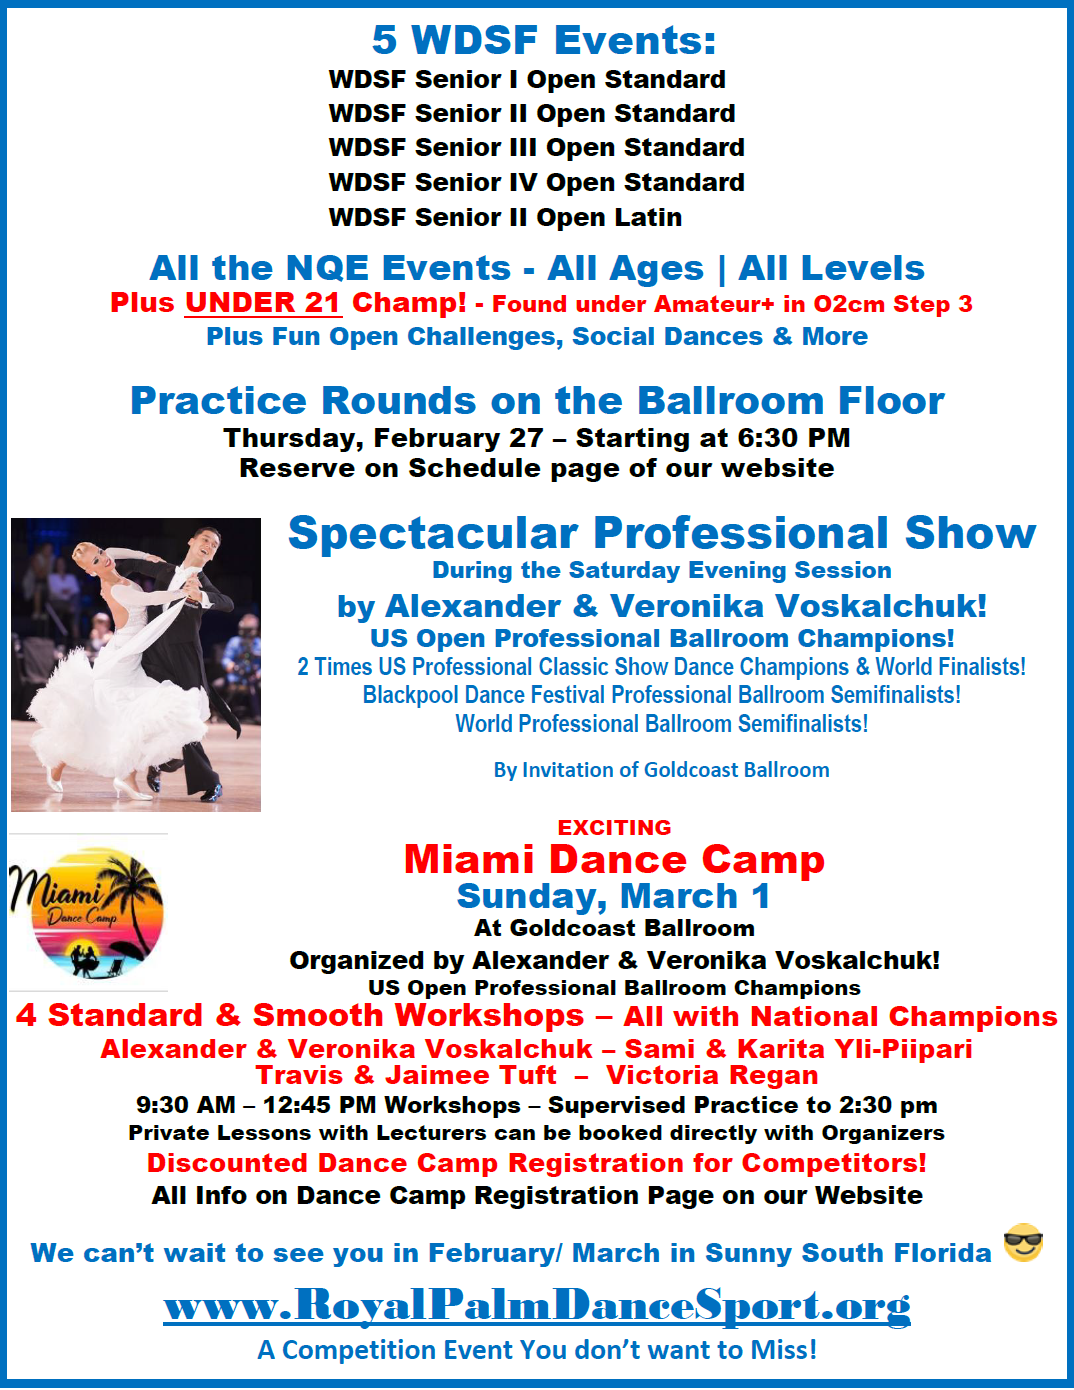 5 WDSF Events - Practice Rounds - Spectacular Professional Show - Dance Camp!